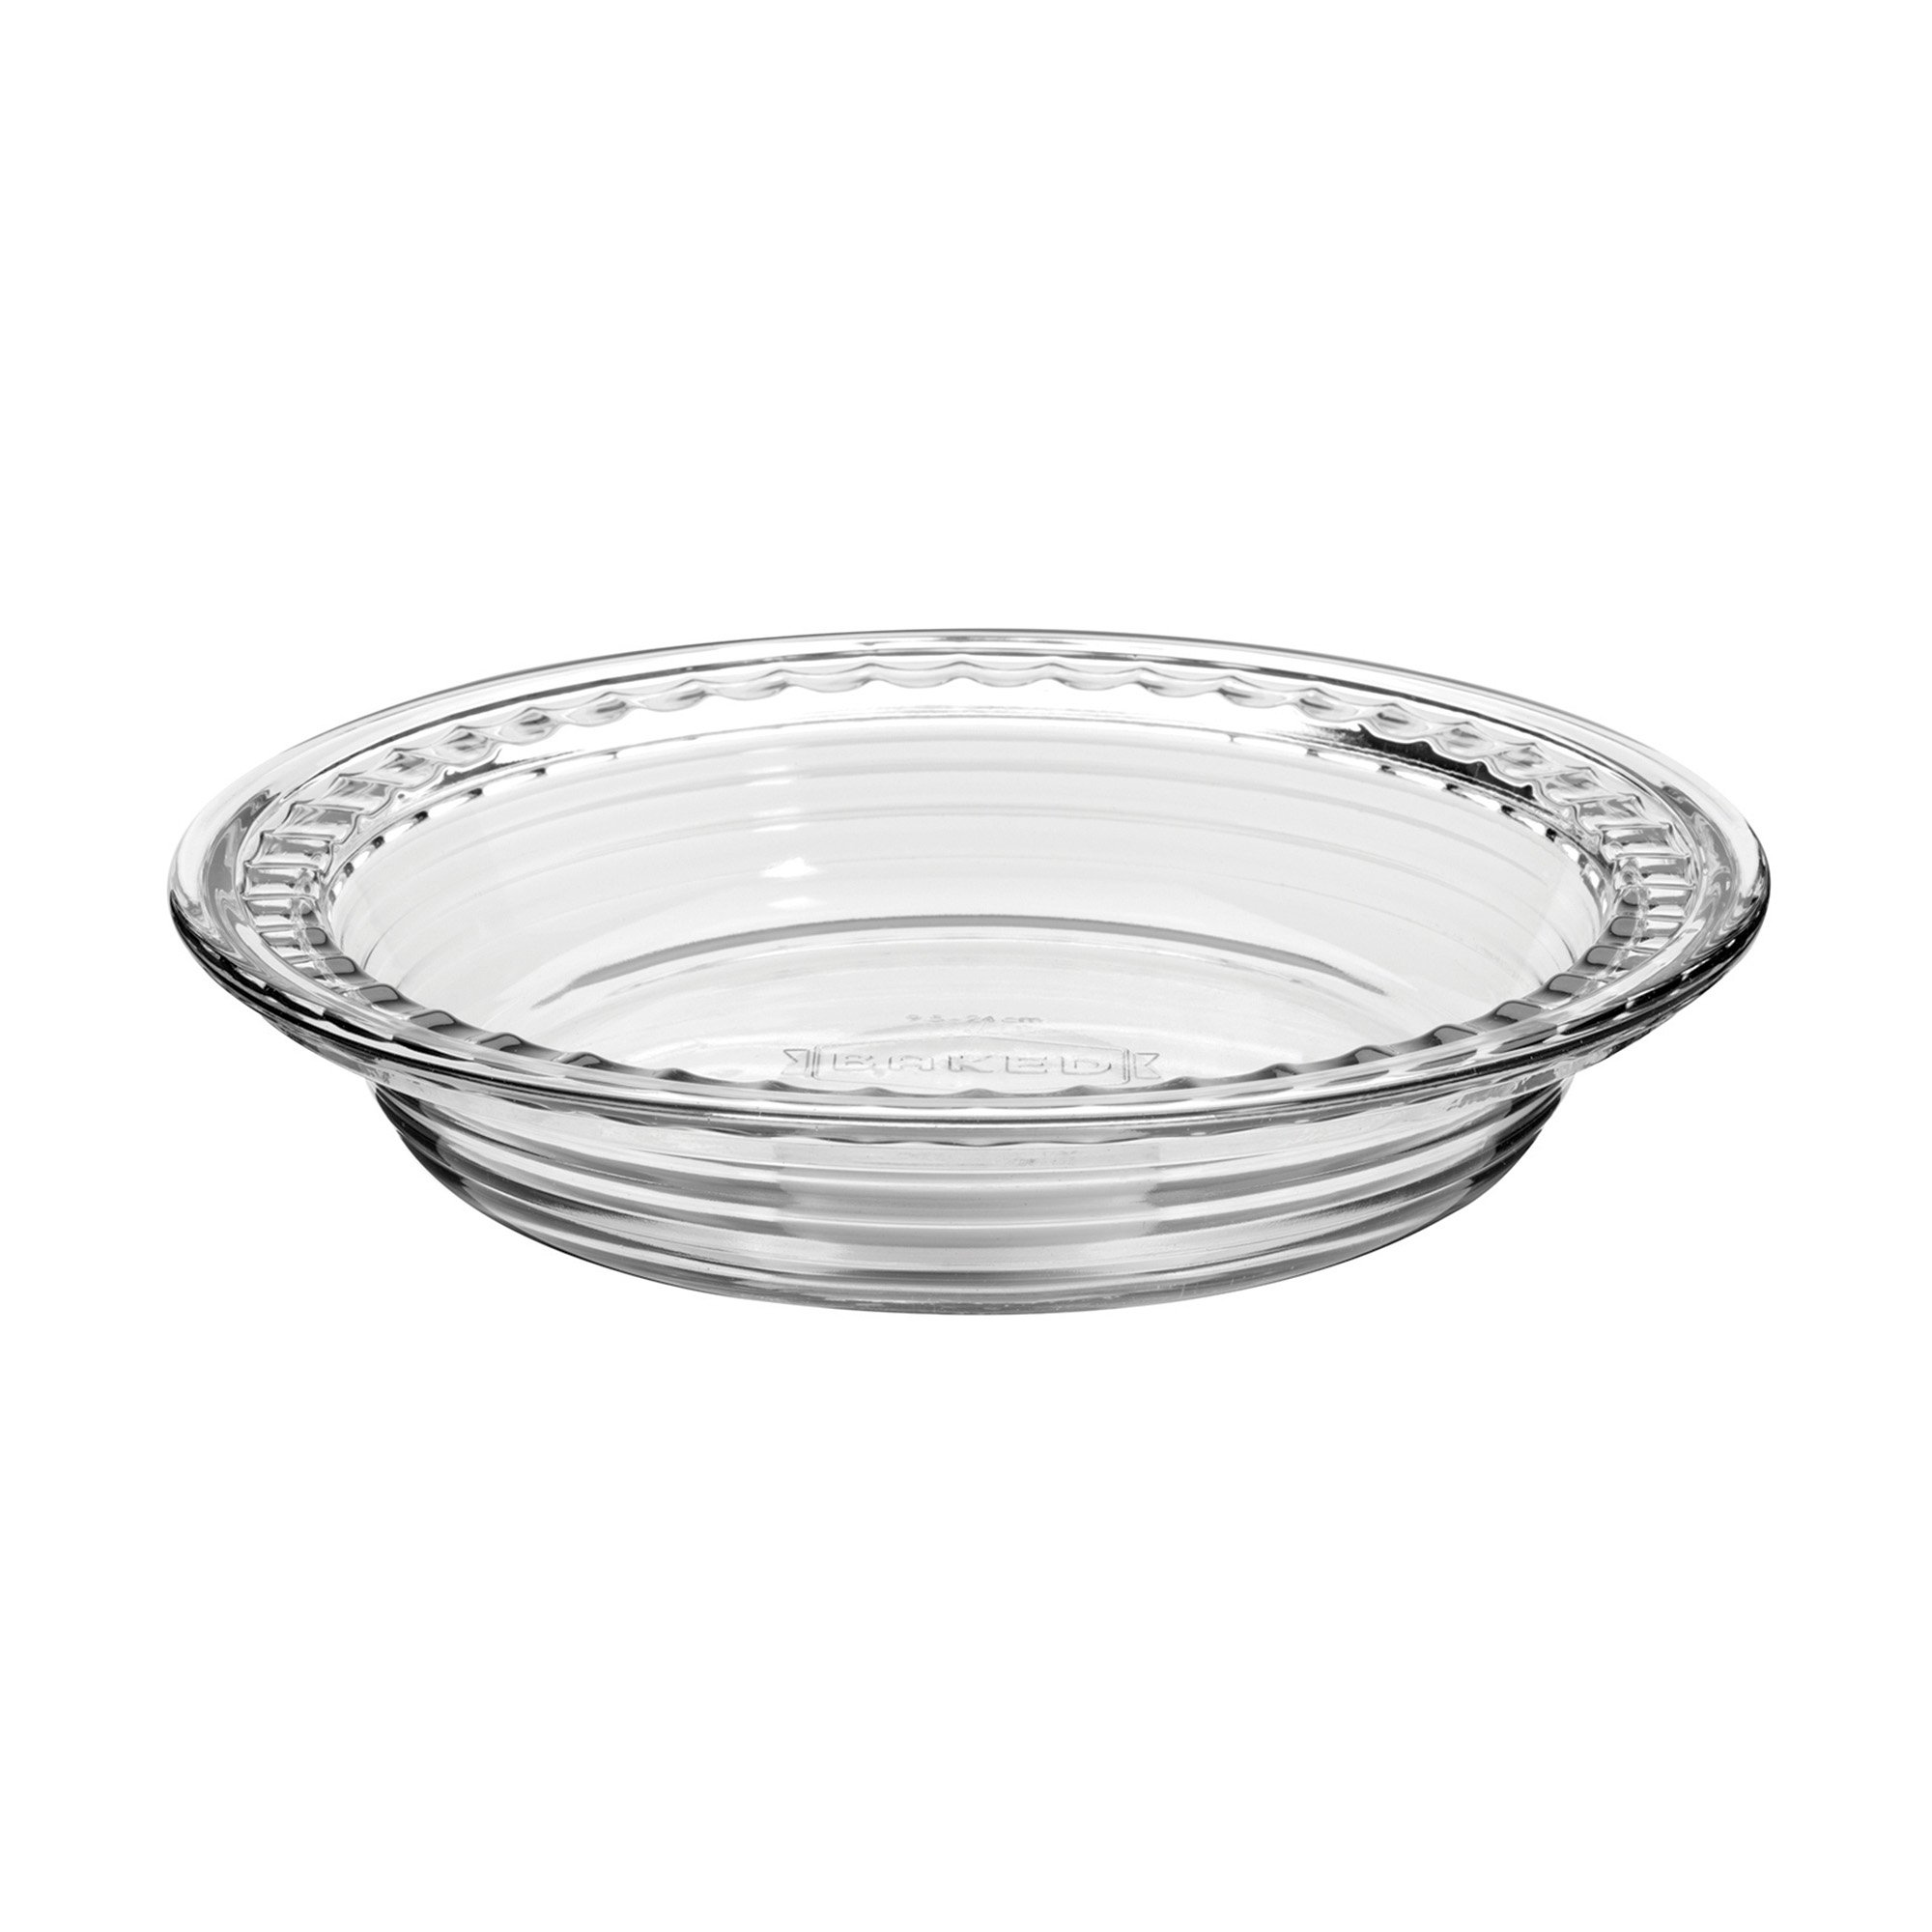 Anchor Hocking 79097 Baked by Fire-King Deep Pie Plate, 9.5-Inch, Glass